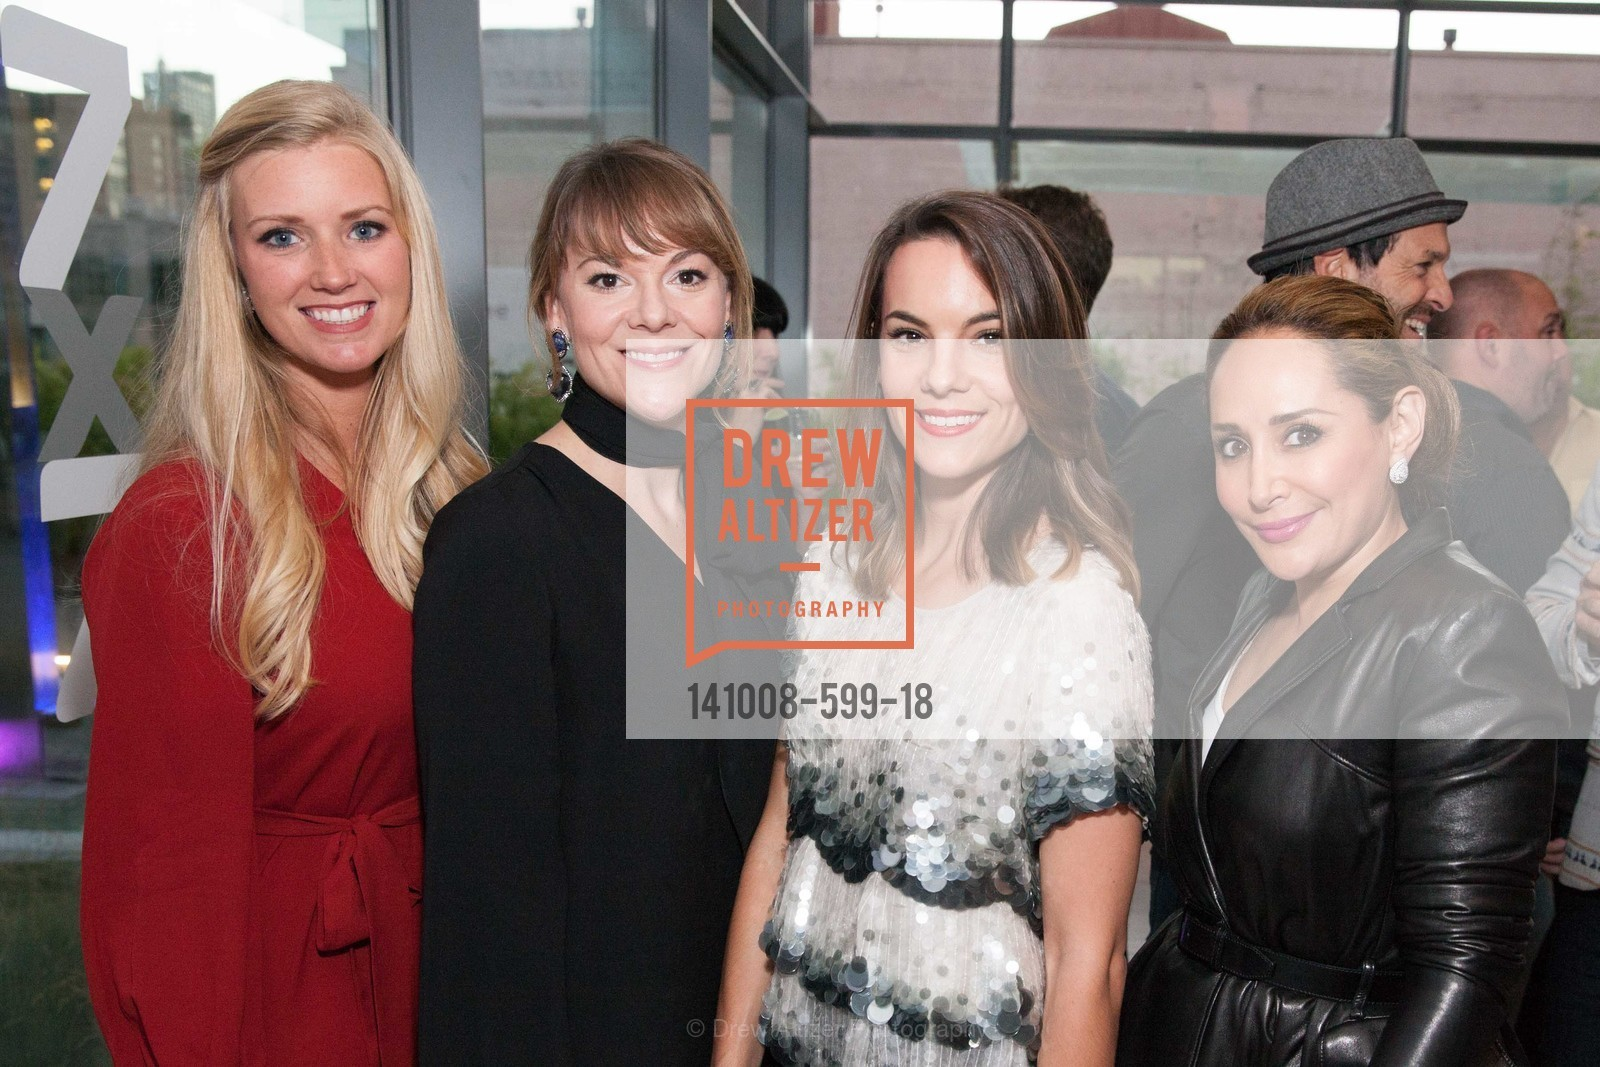 Ann Bedwell, Chloe Hennen, Natalie Wages, Brenda Zarate, 7x7 HOT 20, US, October 8th, 2014,Drew Altizer, Drew Altizer Photography, full-service agency, private events, San Francisco photographer, photographer california